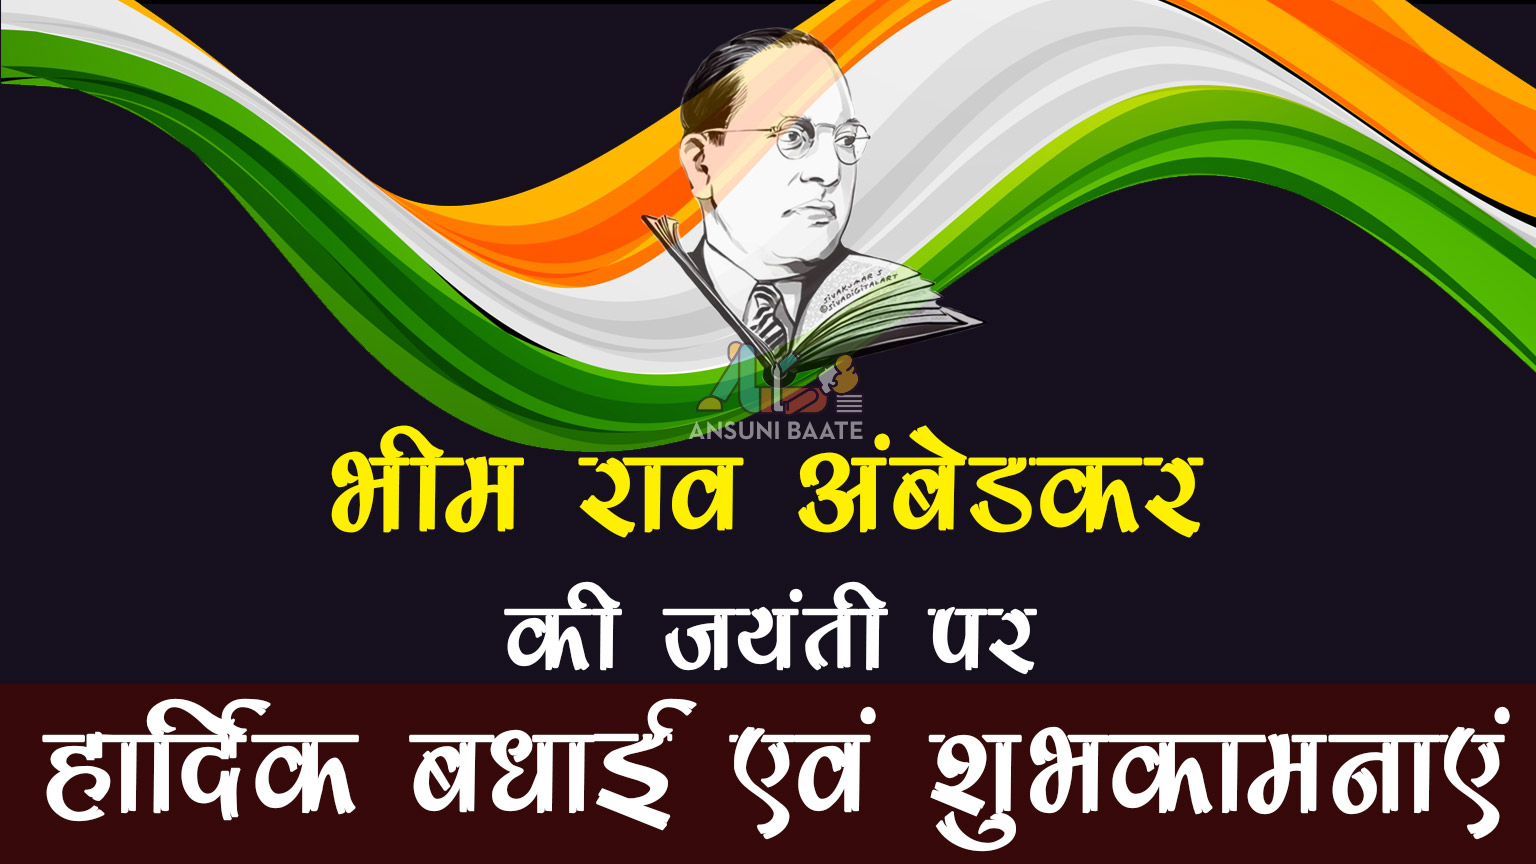 Happy Bhimrao Ambedkar Jayanti Wishes In Hindi